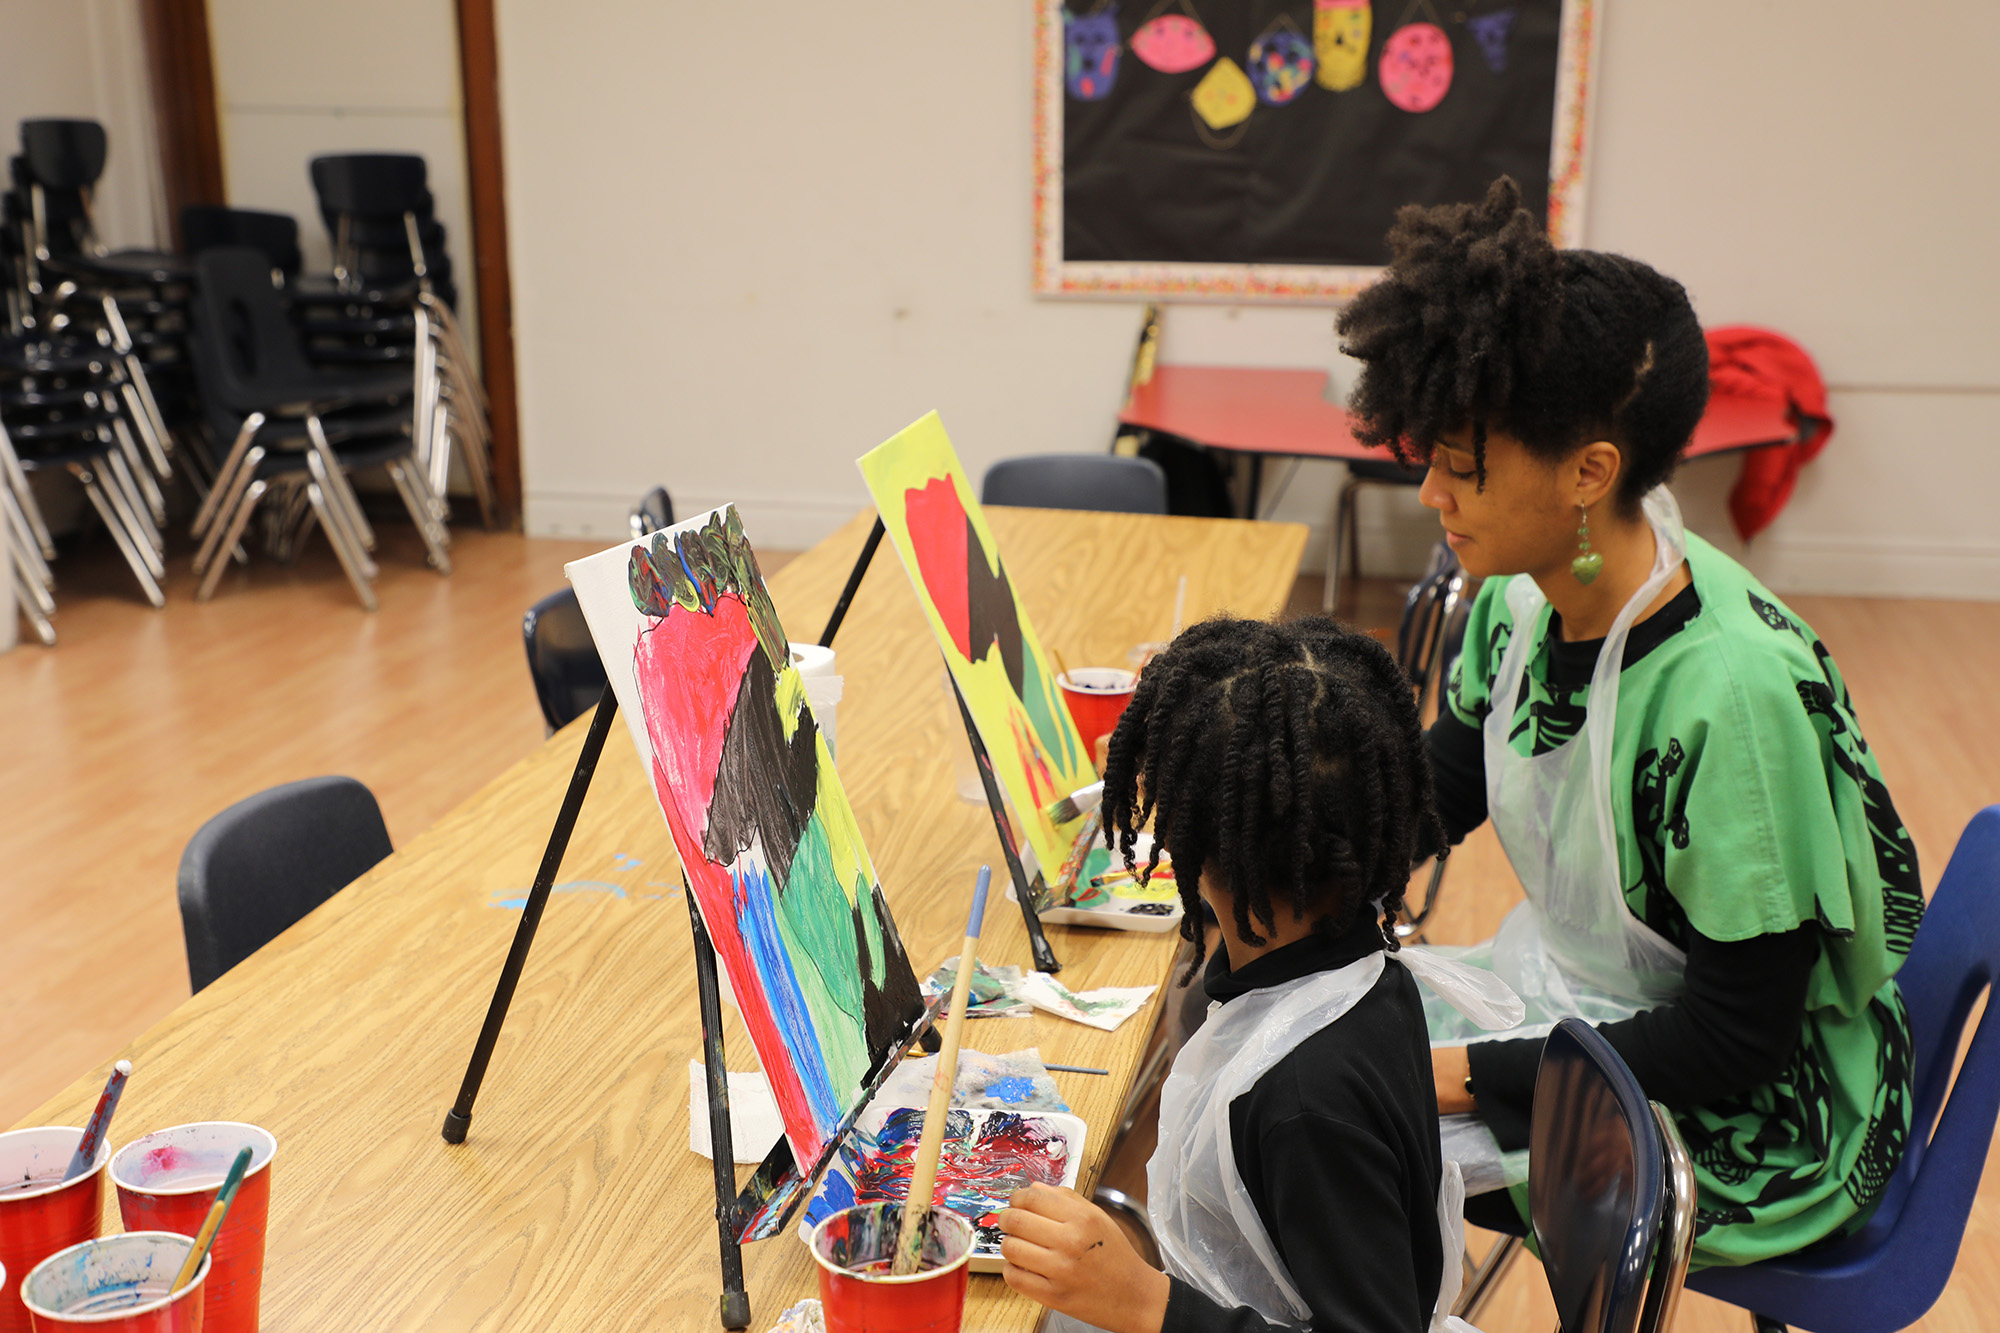 Lecretia Akines and her daughter paint during the Super Karamu event. (Arionne Nettles/WBEZ)